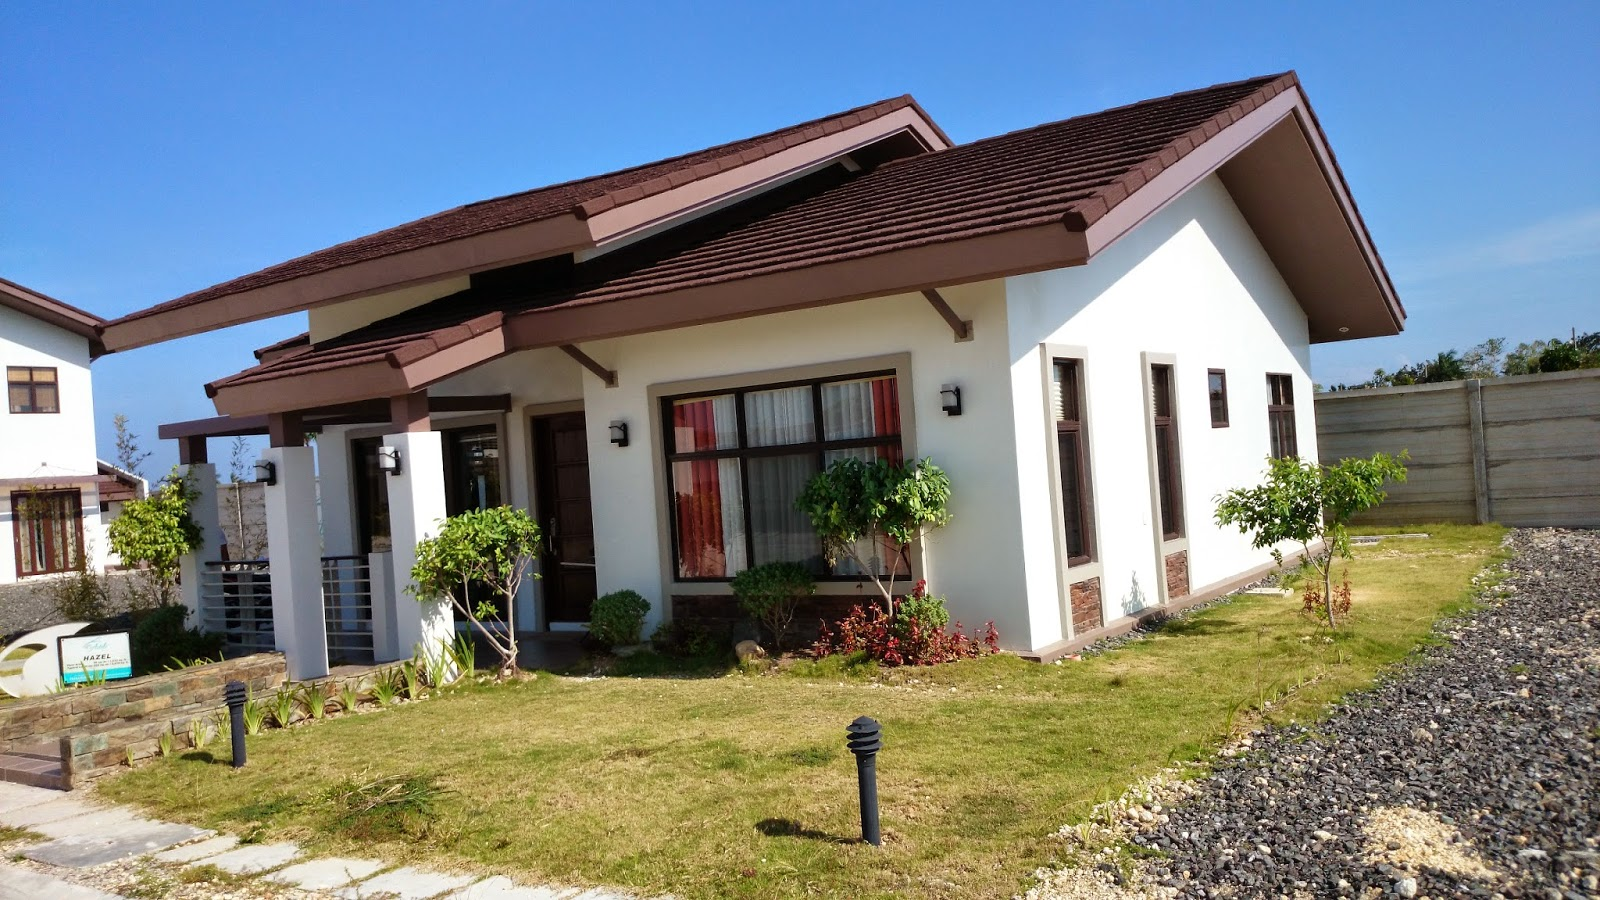 Average houses in the philippines philippines information for Philippines houses pictures